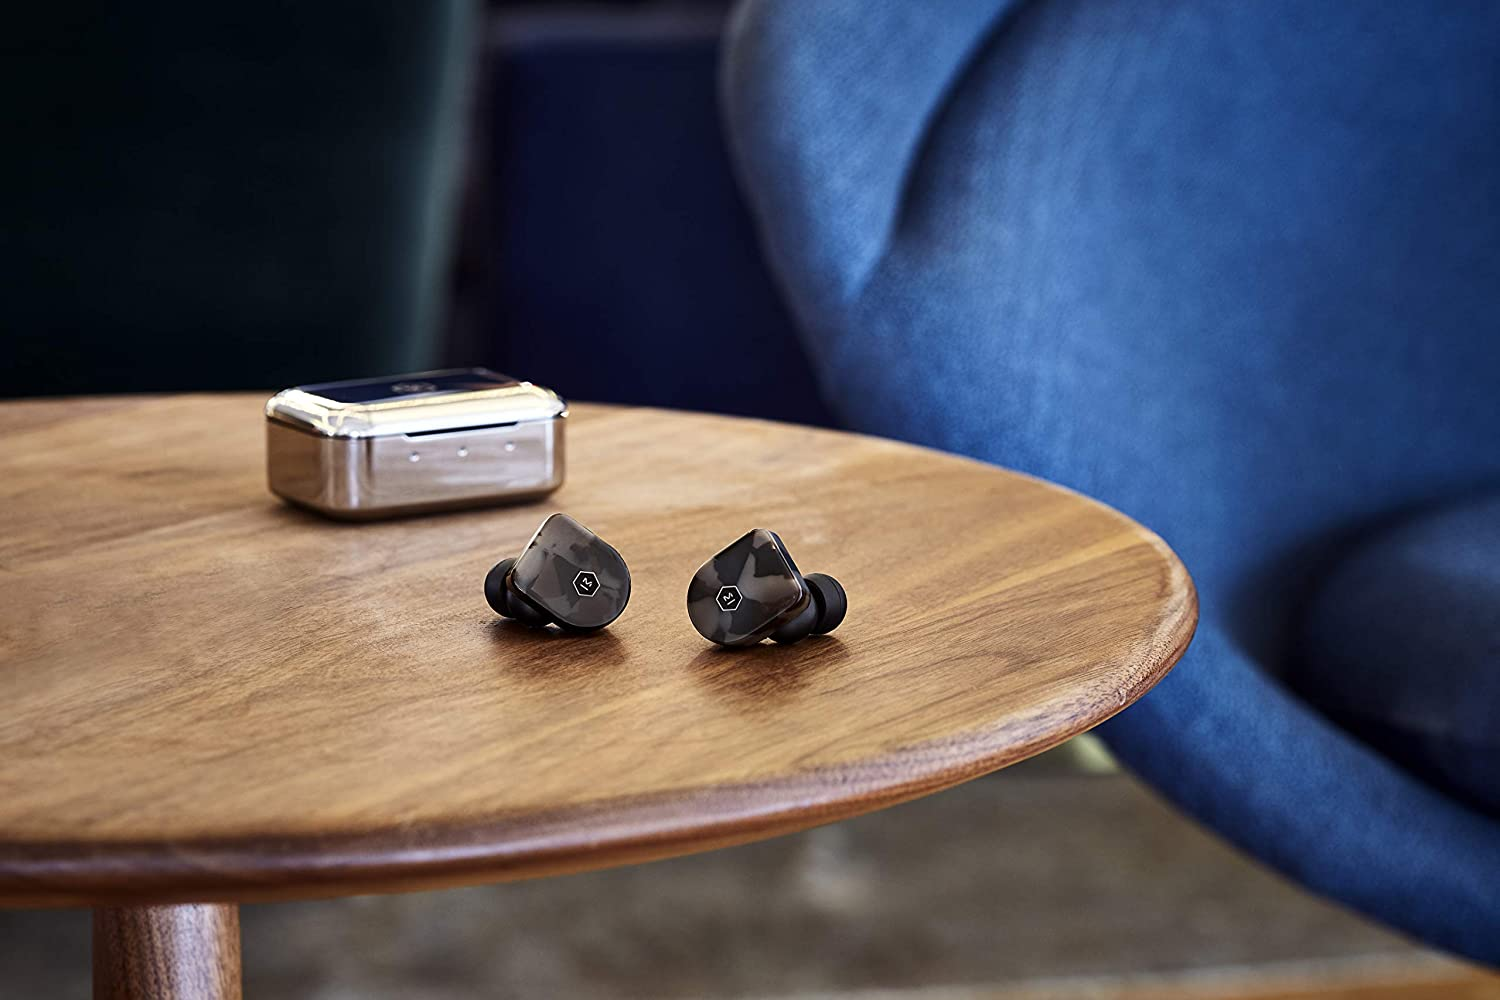 Master & Dynamic MW07 True Wireless Earphones - Bluetooth Enabled Noise Isolating Earbuds - Lightweight Quality Earbuds for Music